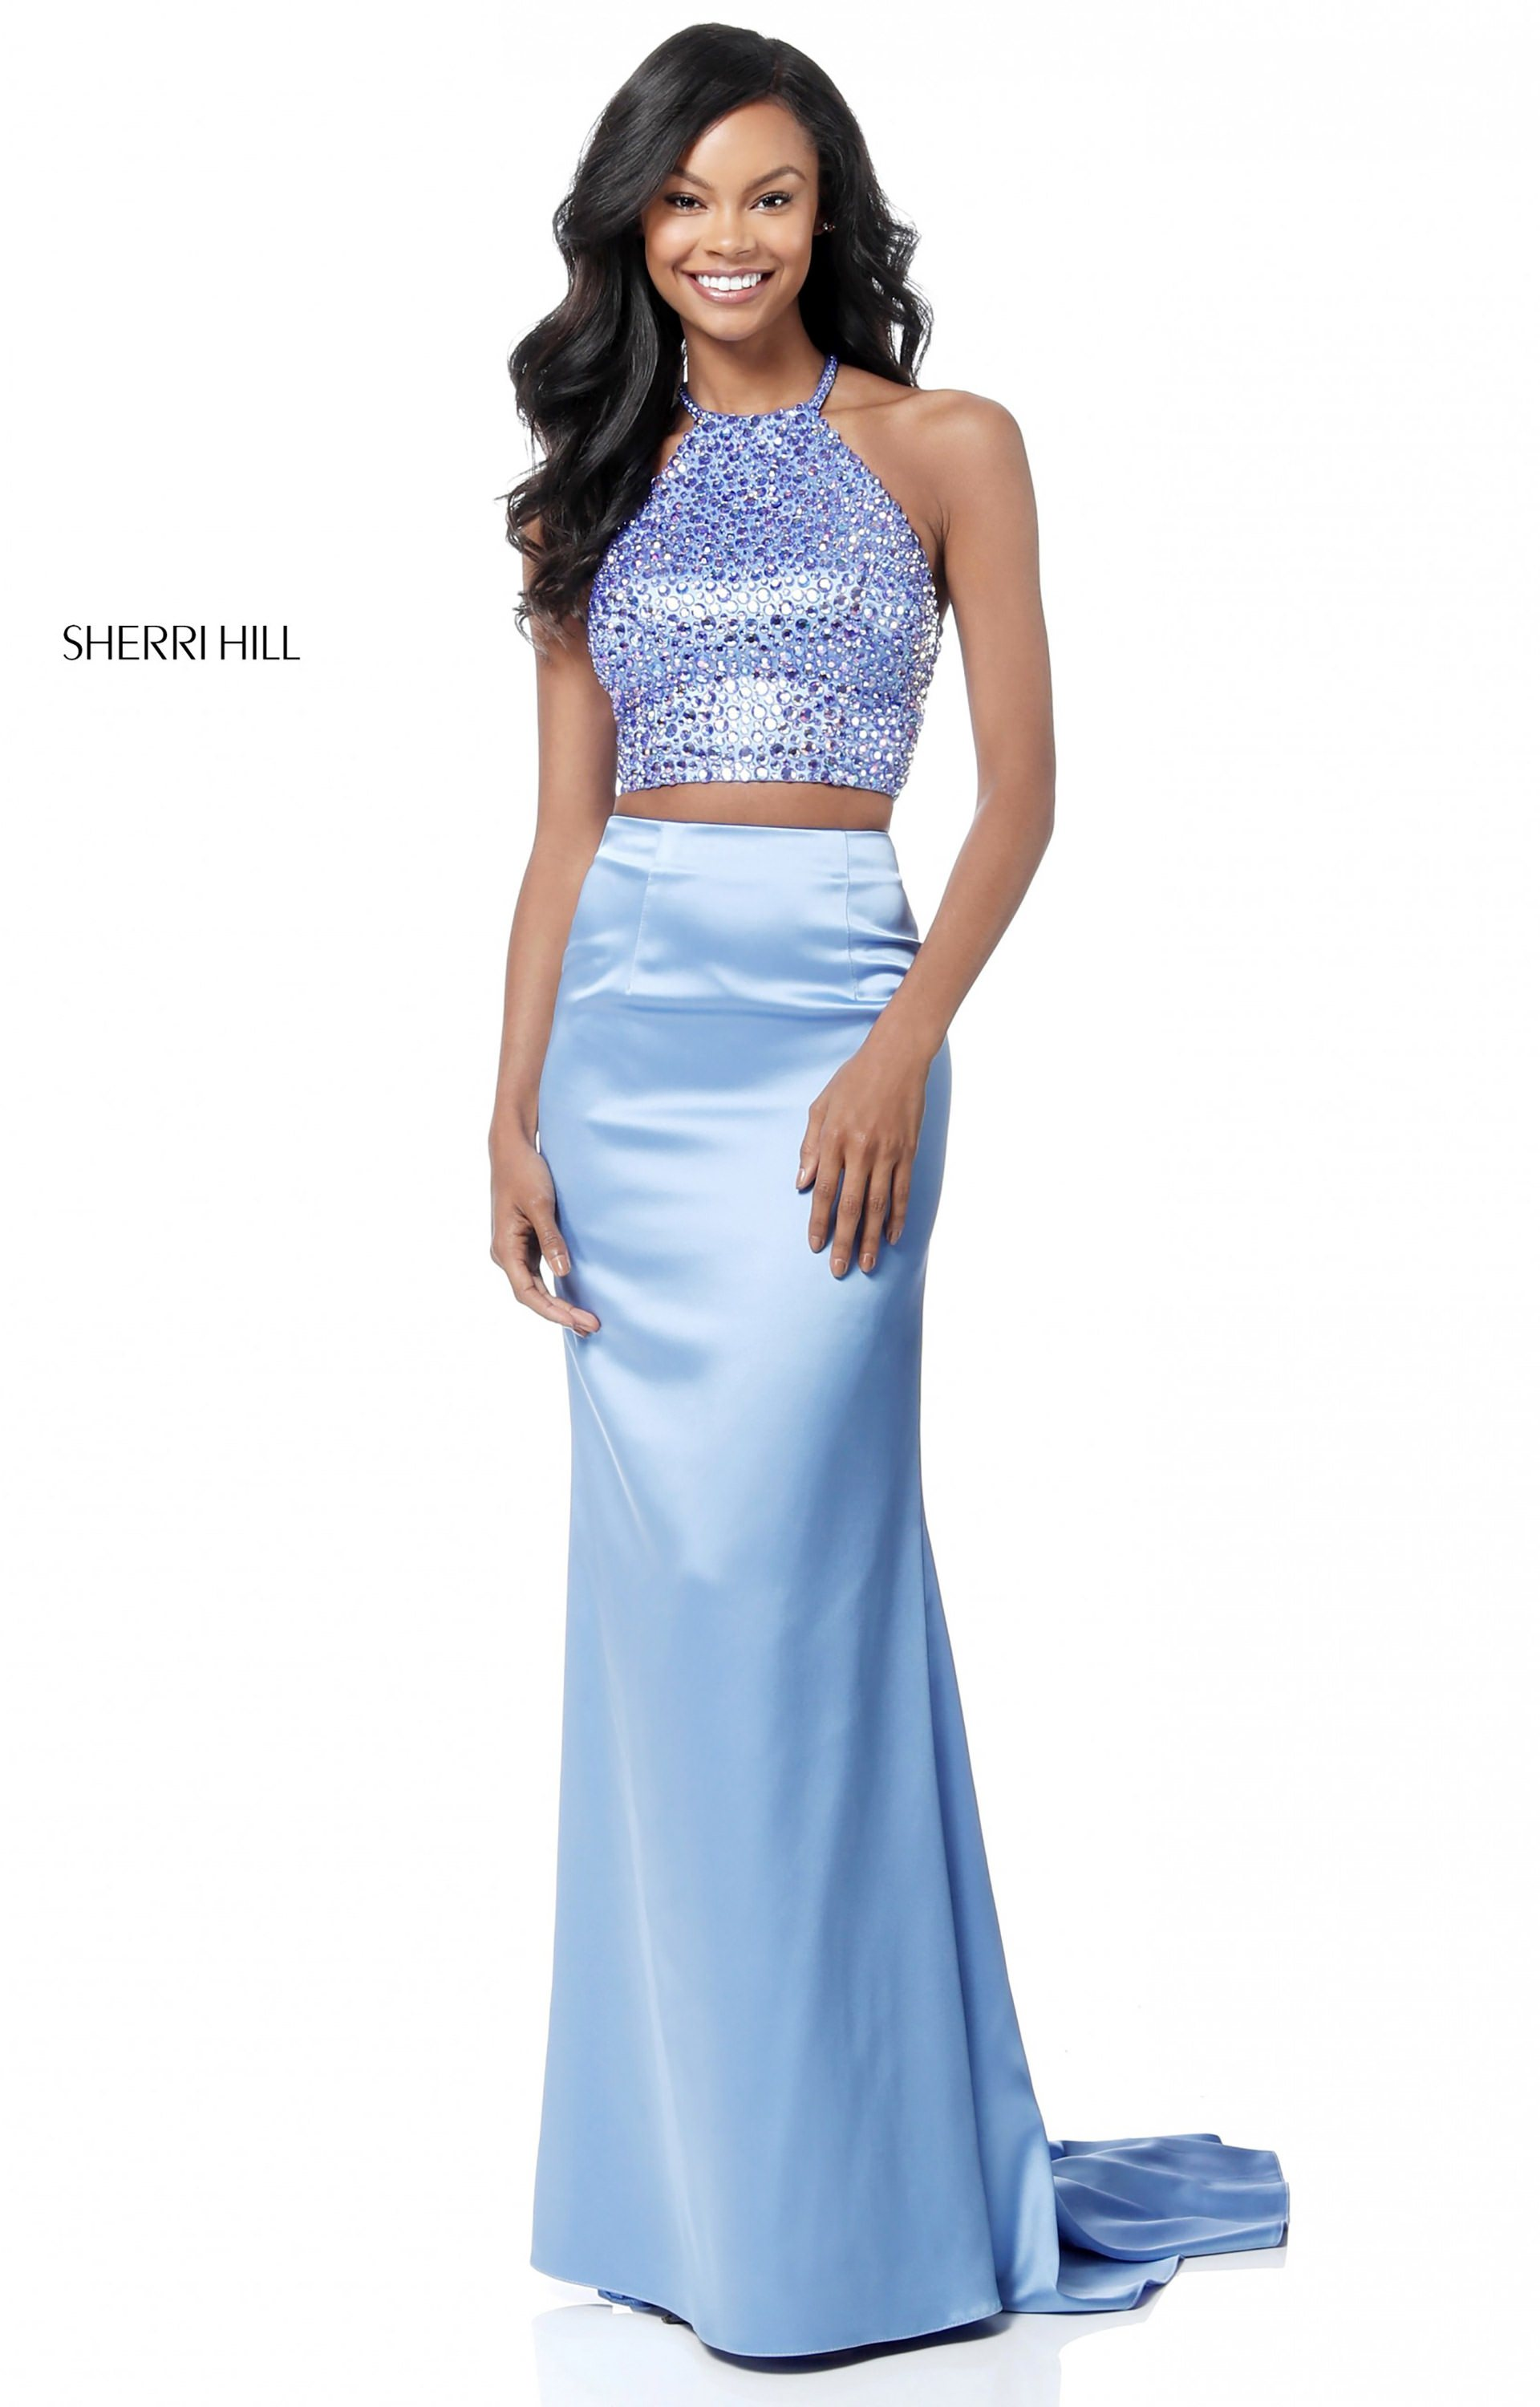 50915aab9f8 Sherri Hill 51647. Long Fitted Satin 2 Piece. Shine bright in Sherri Hill  51647! This adorable two piece set showcases a tonal beaded halter ...